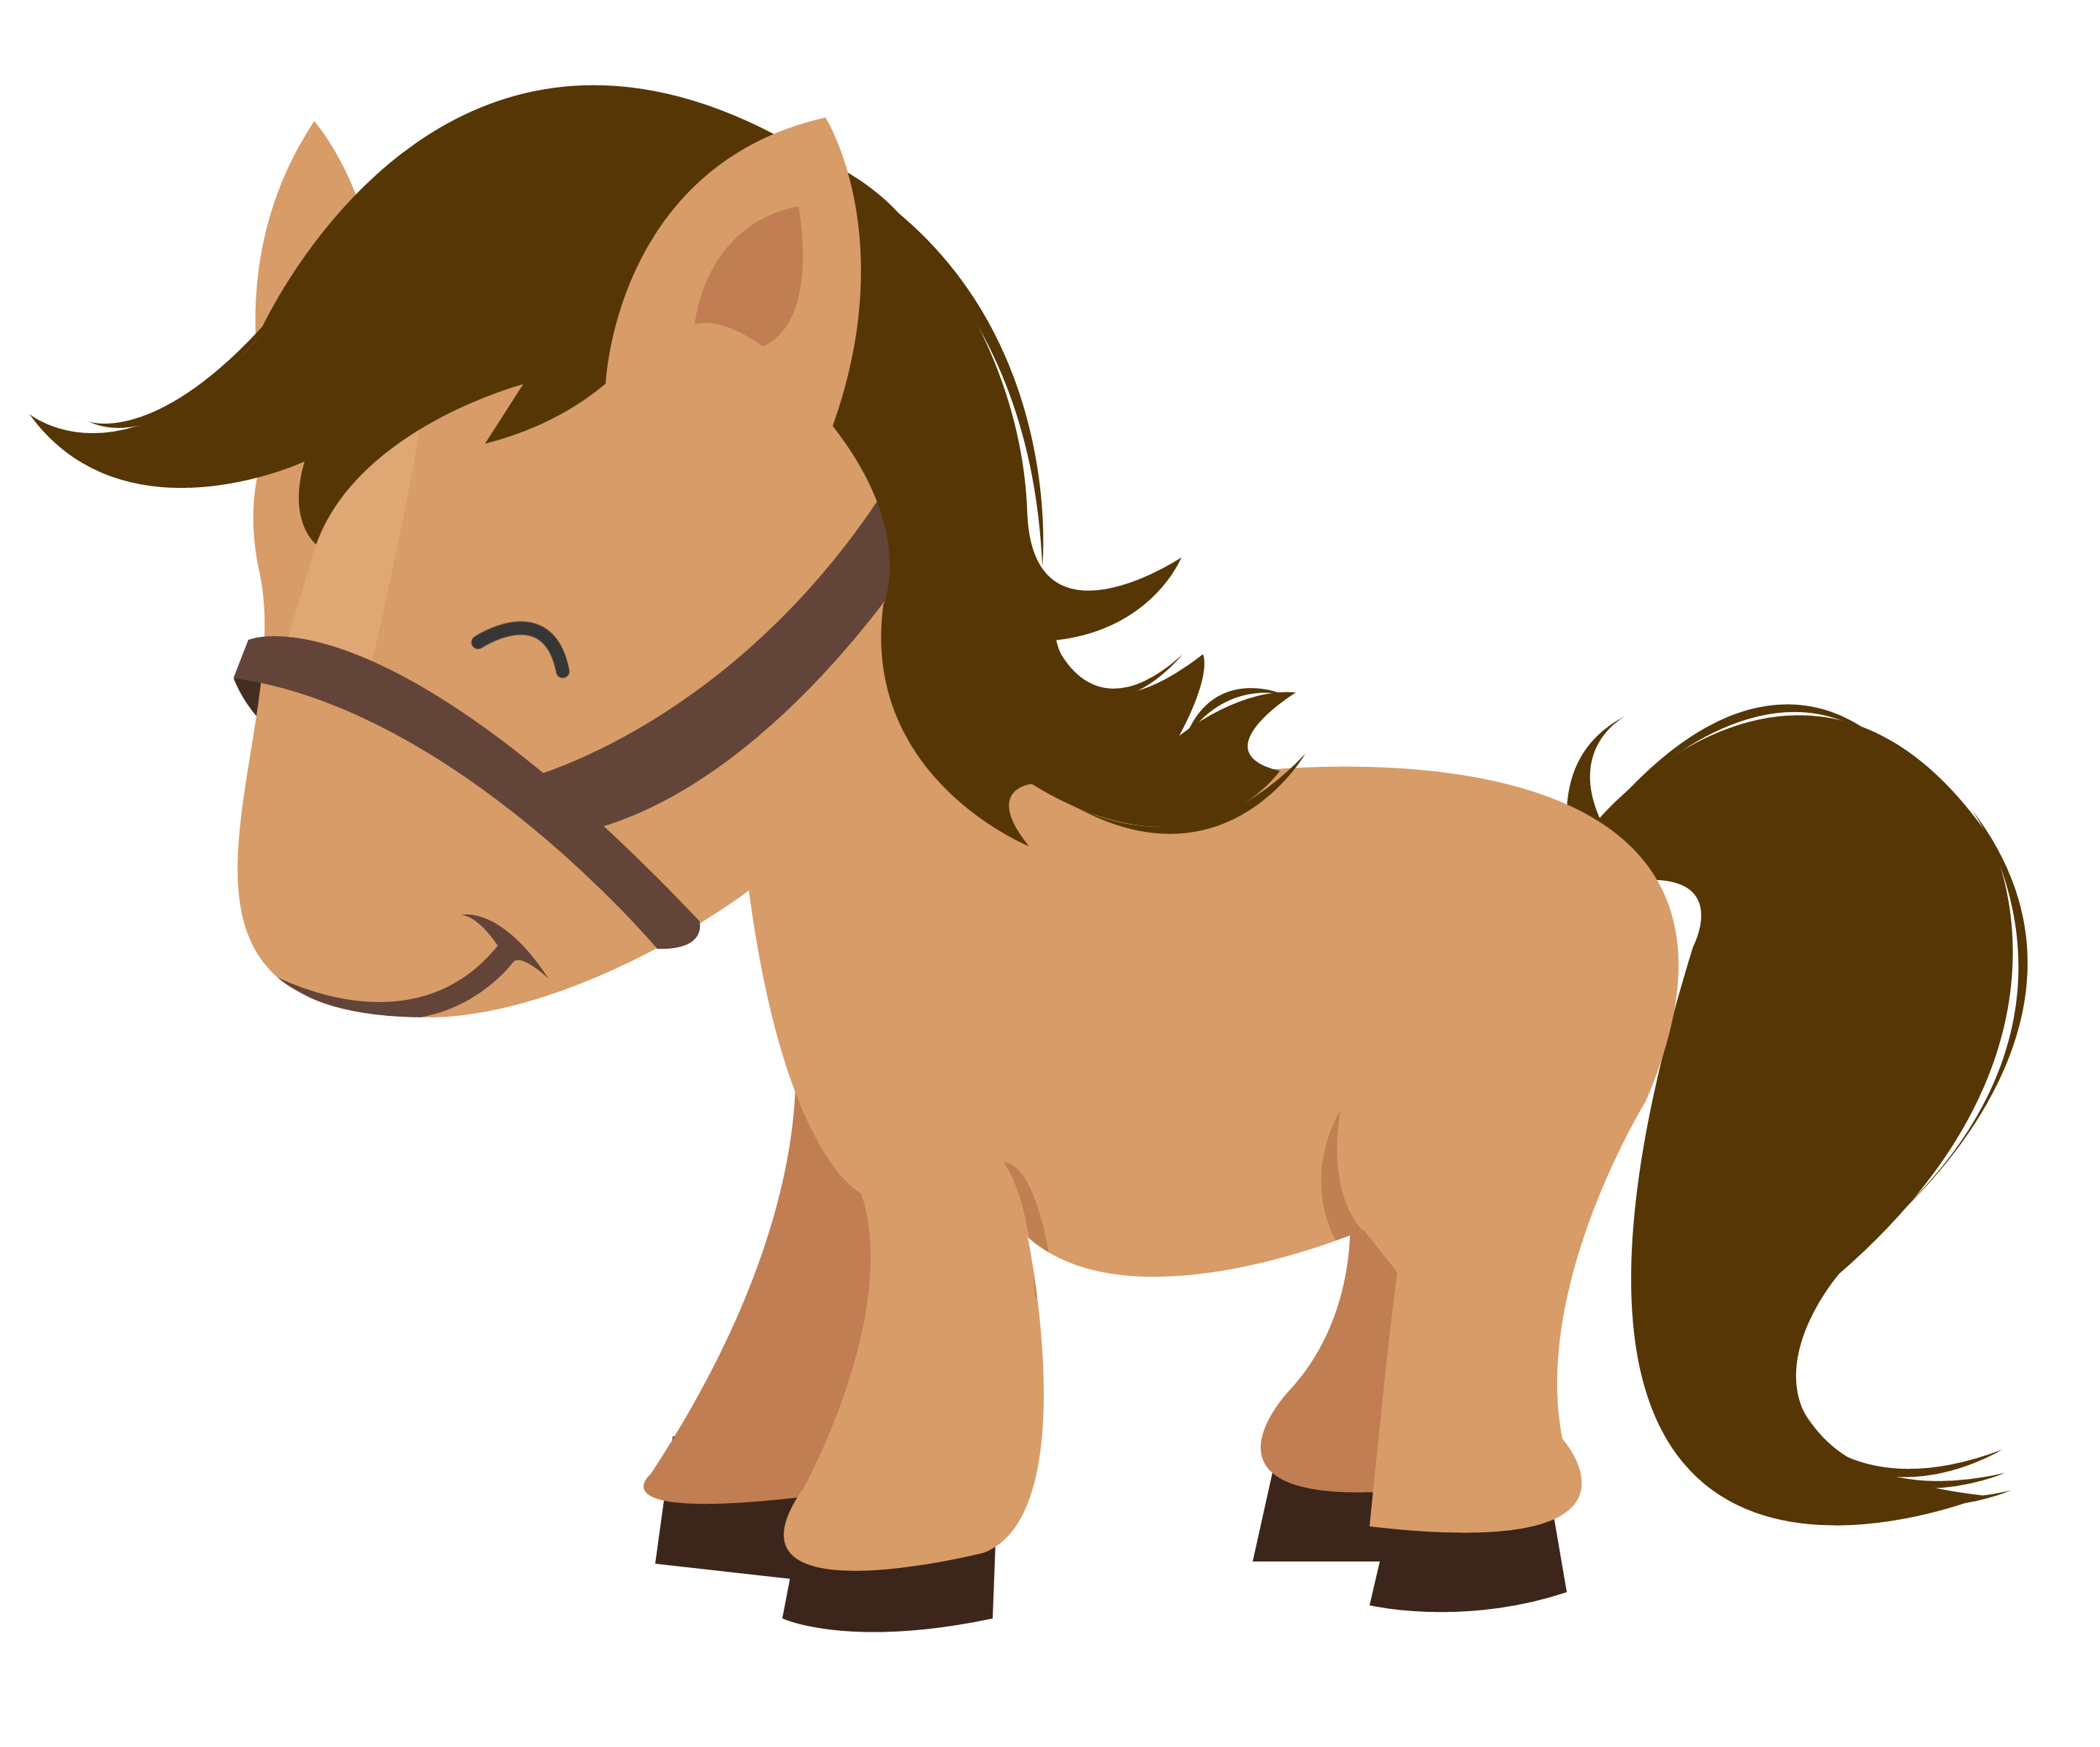 Baby pony graphics illustrations. Clipart definition database